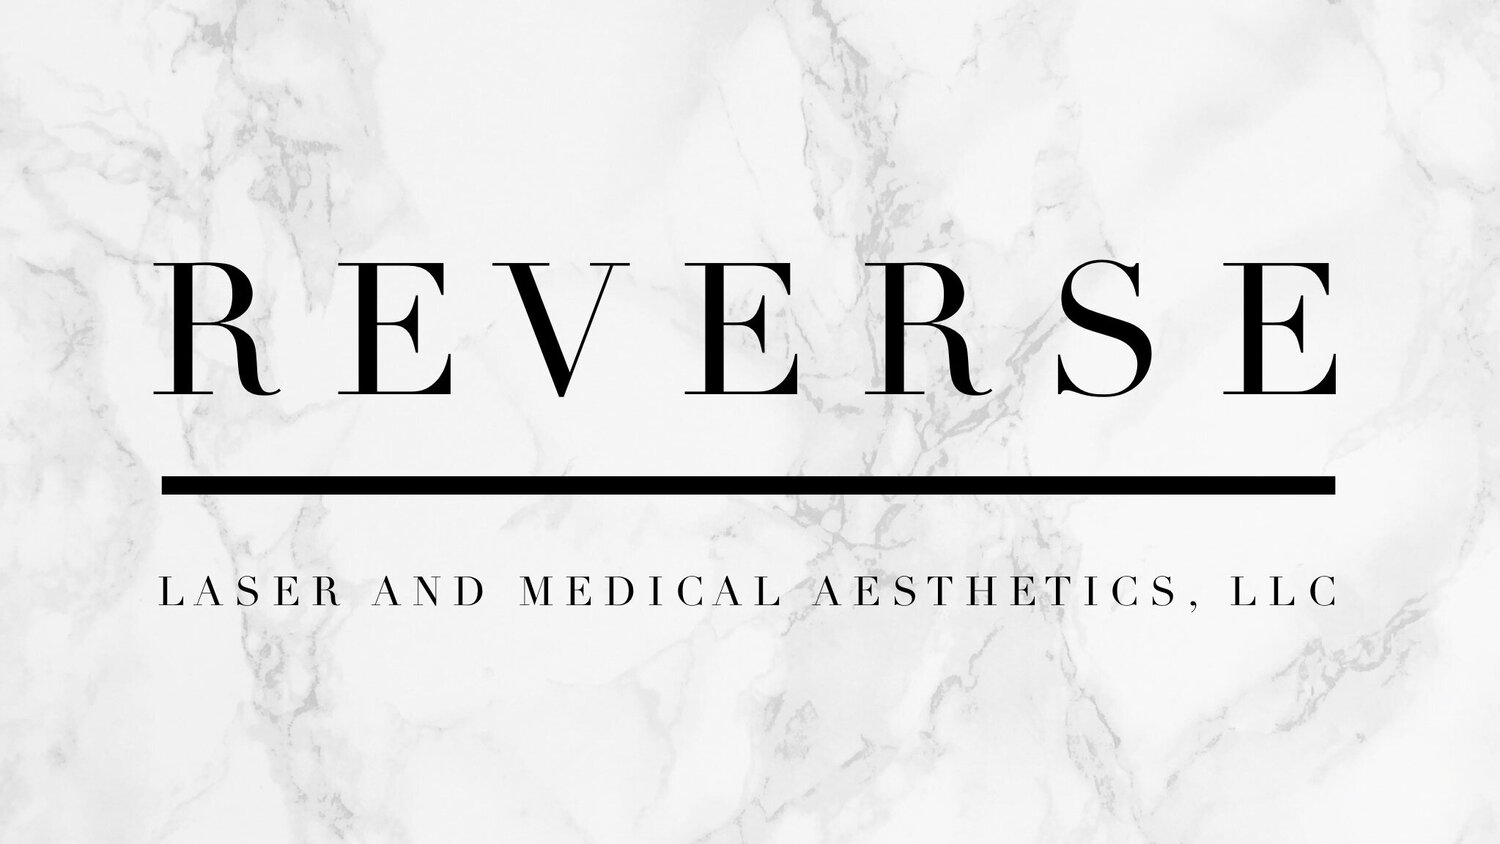 Reverse Laser and Medical Aesthetics, LLC